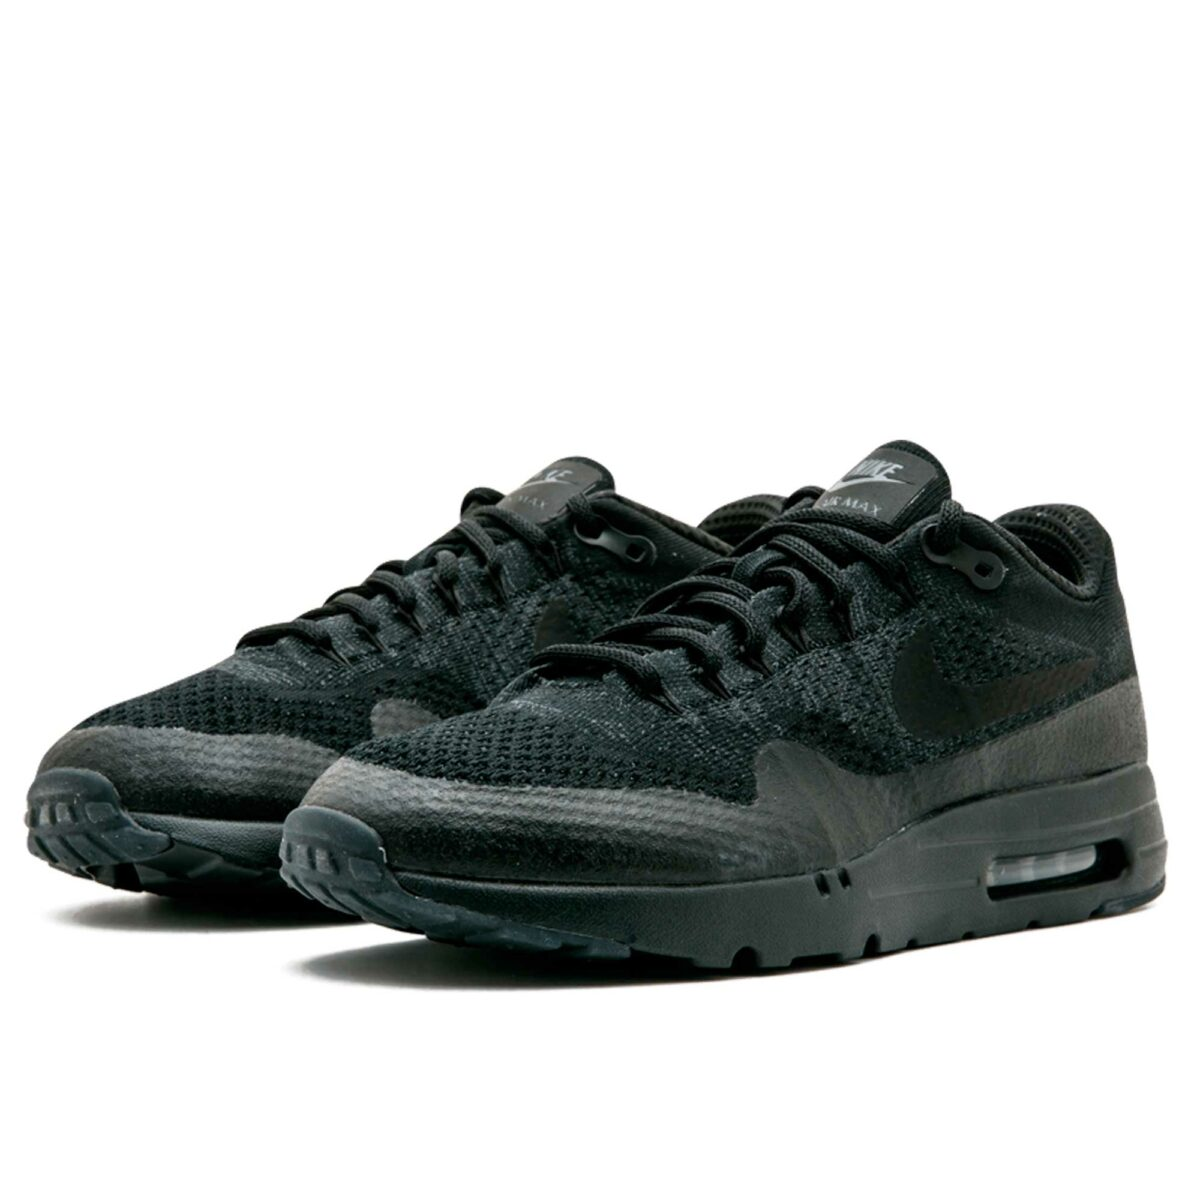 nike air max 1 87 ultra flyknit black 856958-001 купить